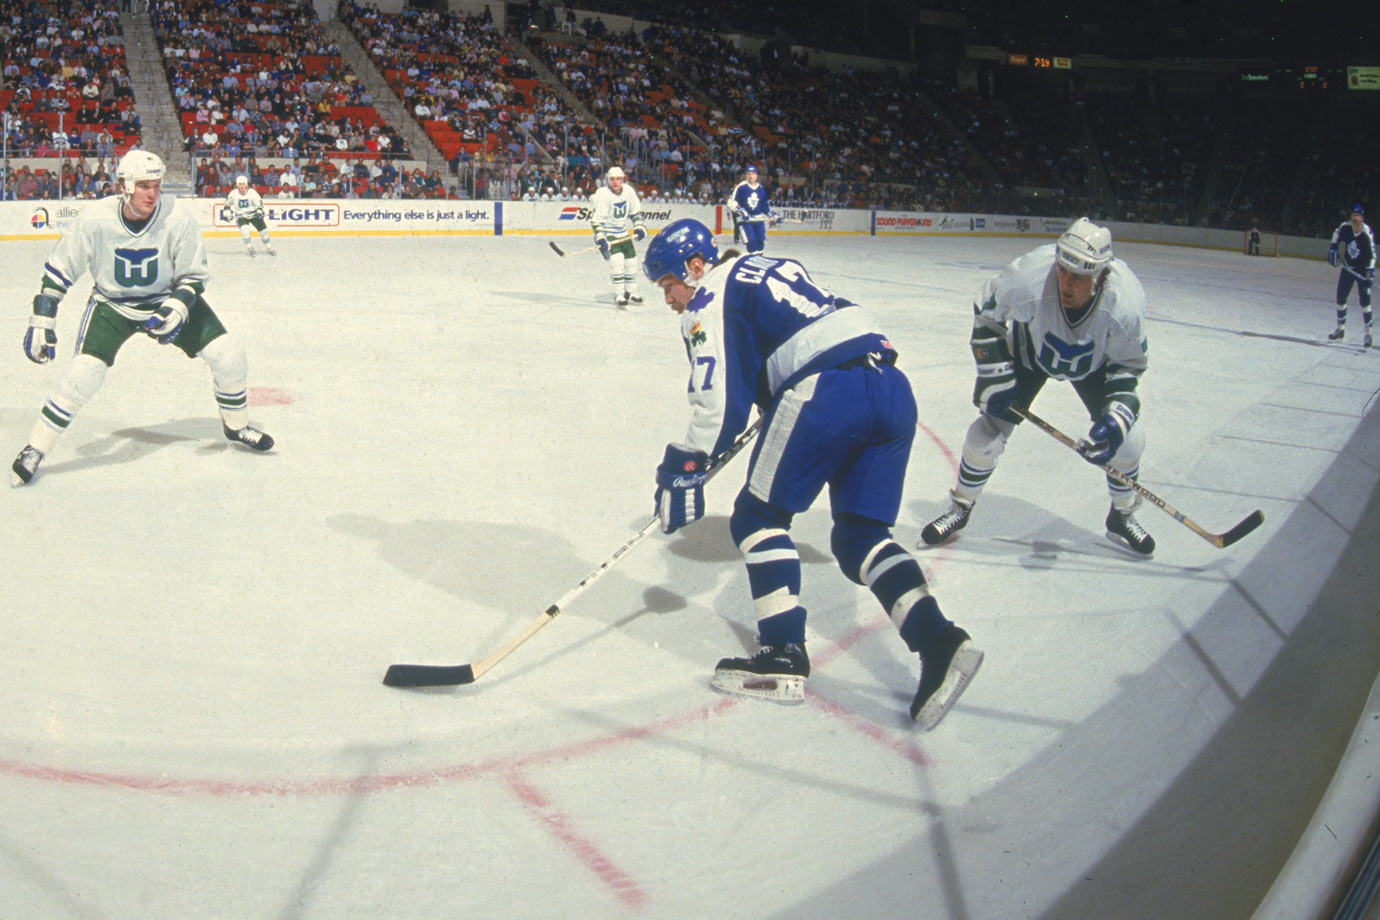 <p>One of the most revered Leafs, the aggressive, roughneck Clark scored 34 goals (with 227 PIM) as a rookie and was edged for the Calder by Flames defenseman Gary Suter. Clark later attained the Leafs' captaincy, but was plagued by injuries and traded to Quebec for Mats Sundin in 1994. Clark retired in 2000, having scored 330 goals for six teams. — Notable picks: No. 2: Craig Simpson, LW, Pittsburgh Penguins | No. 27: Joe Nieuwendyk, C, Calgary Flames | No. 28: Mike Richter, G, New York Rangers | No. 52: Bill Ranford, G, Boston Bruins | No. 214: Igor Larionov, C, Vancouver Canucks</p>